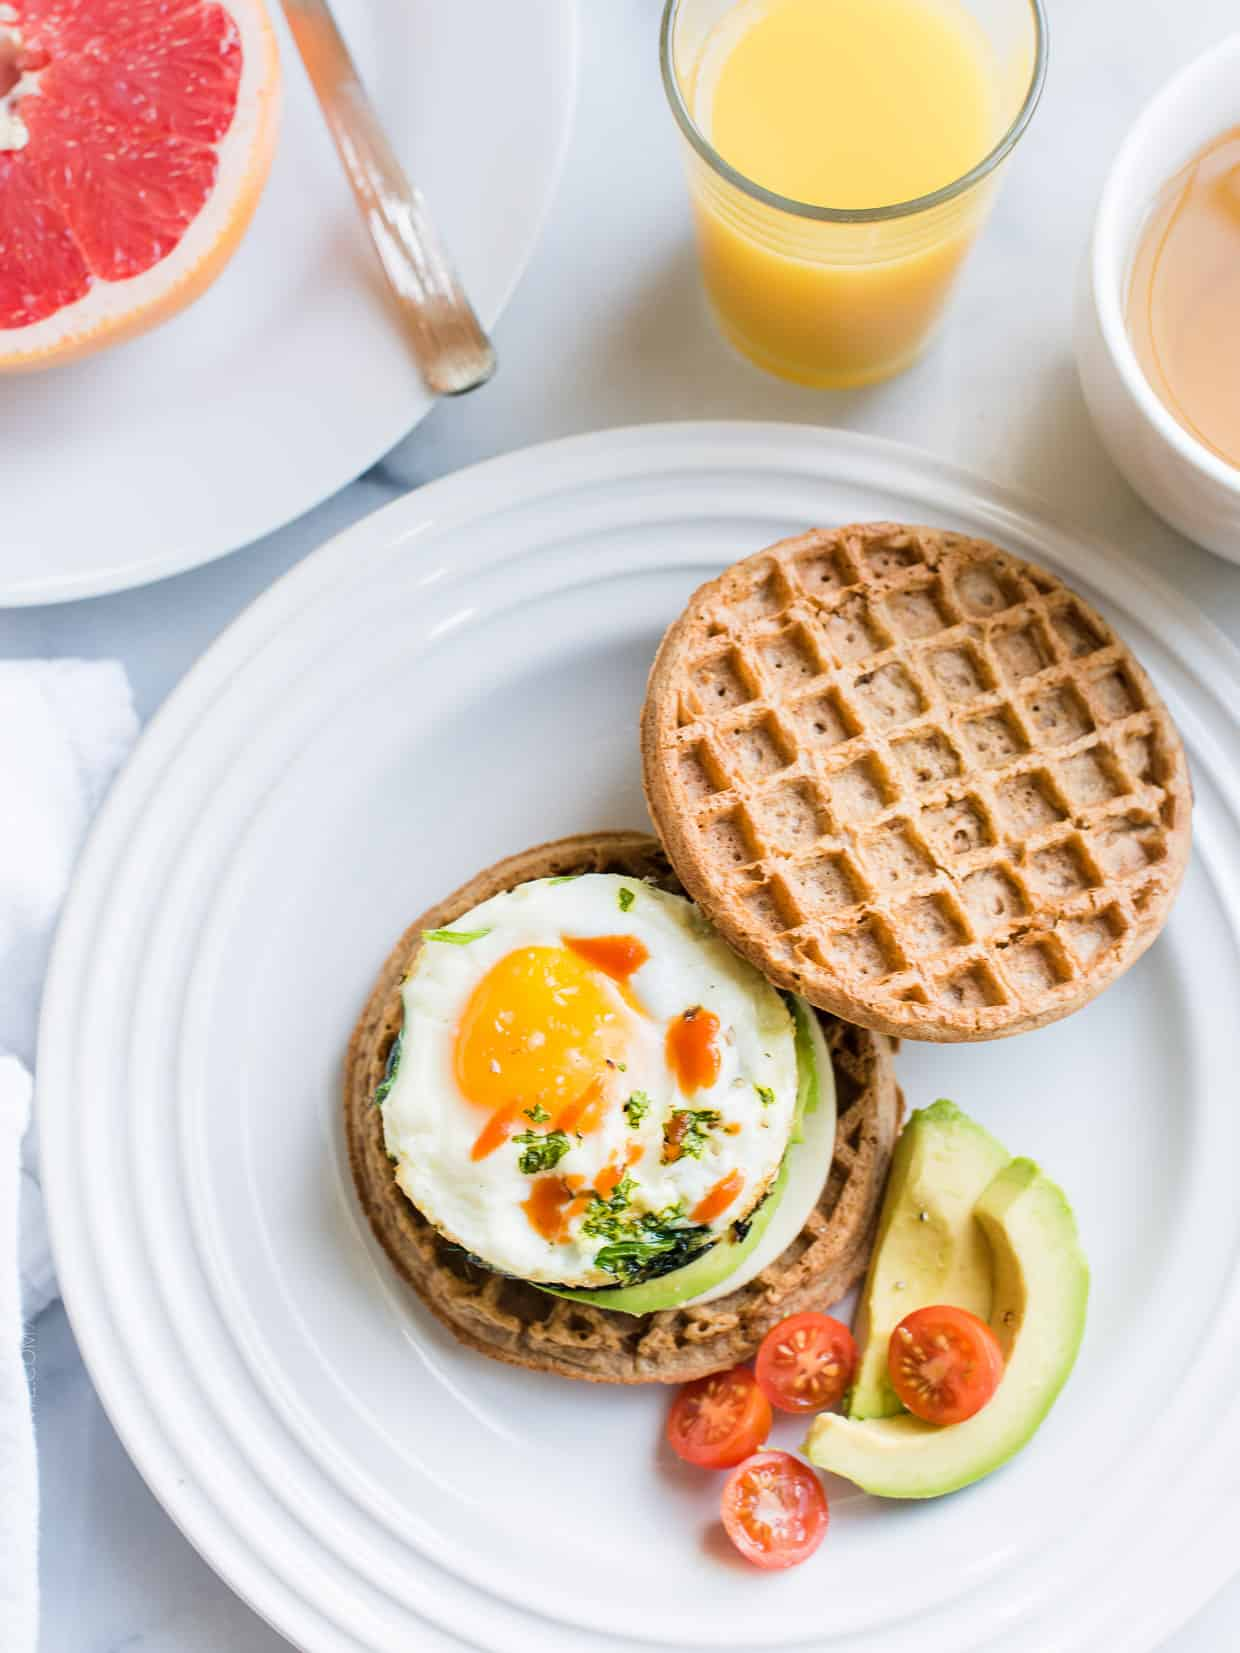 Fuel up for the day with a Waffle Breakfast Sandwich by making healthy eggs in the microwave. This easy recipe shows you how.